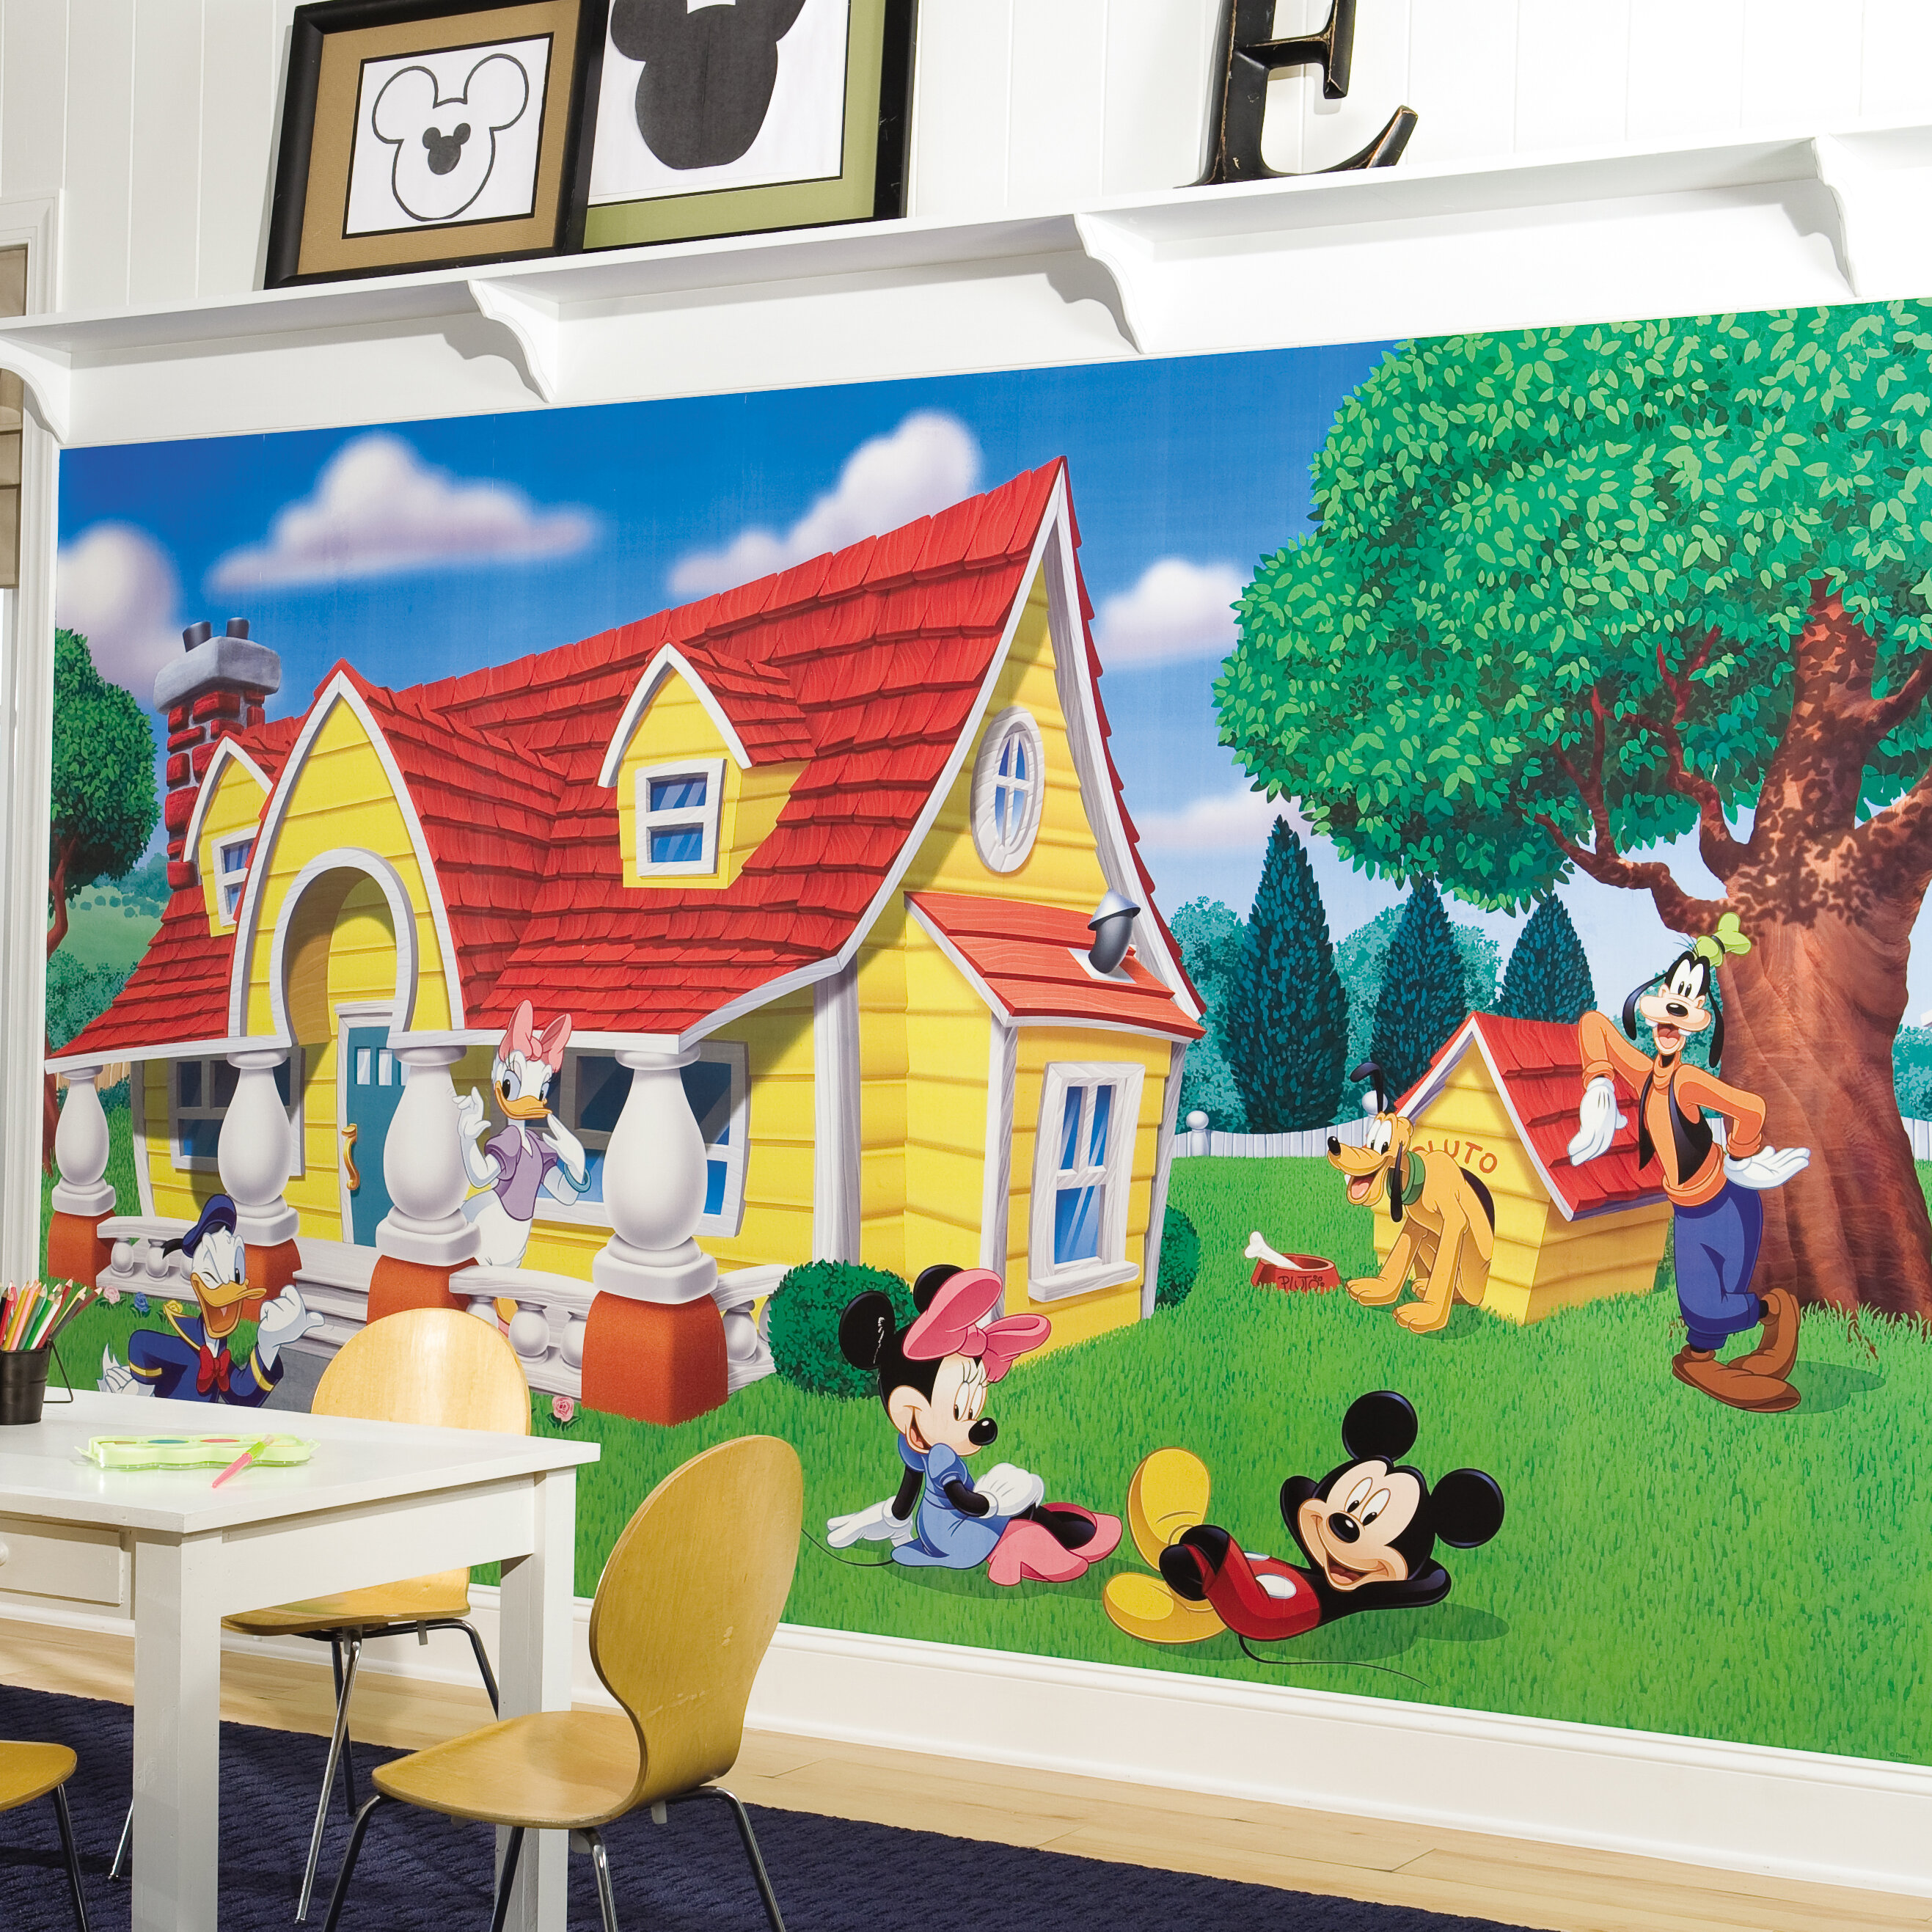 Extra Large Murals 10 5' x 72